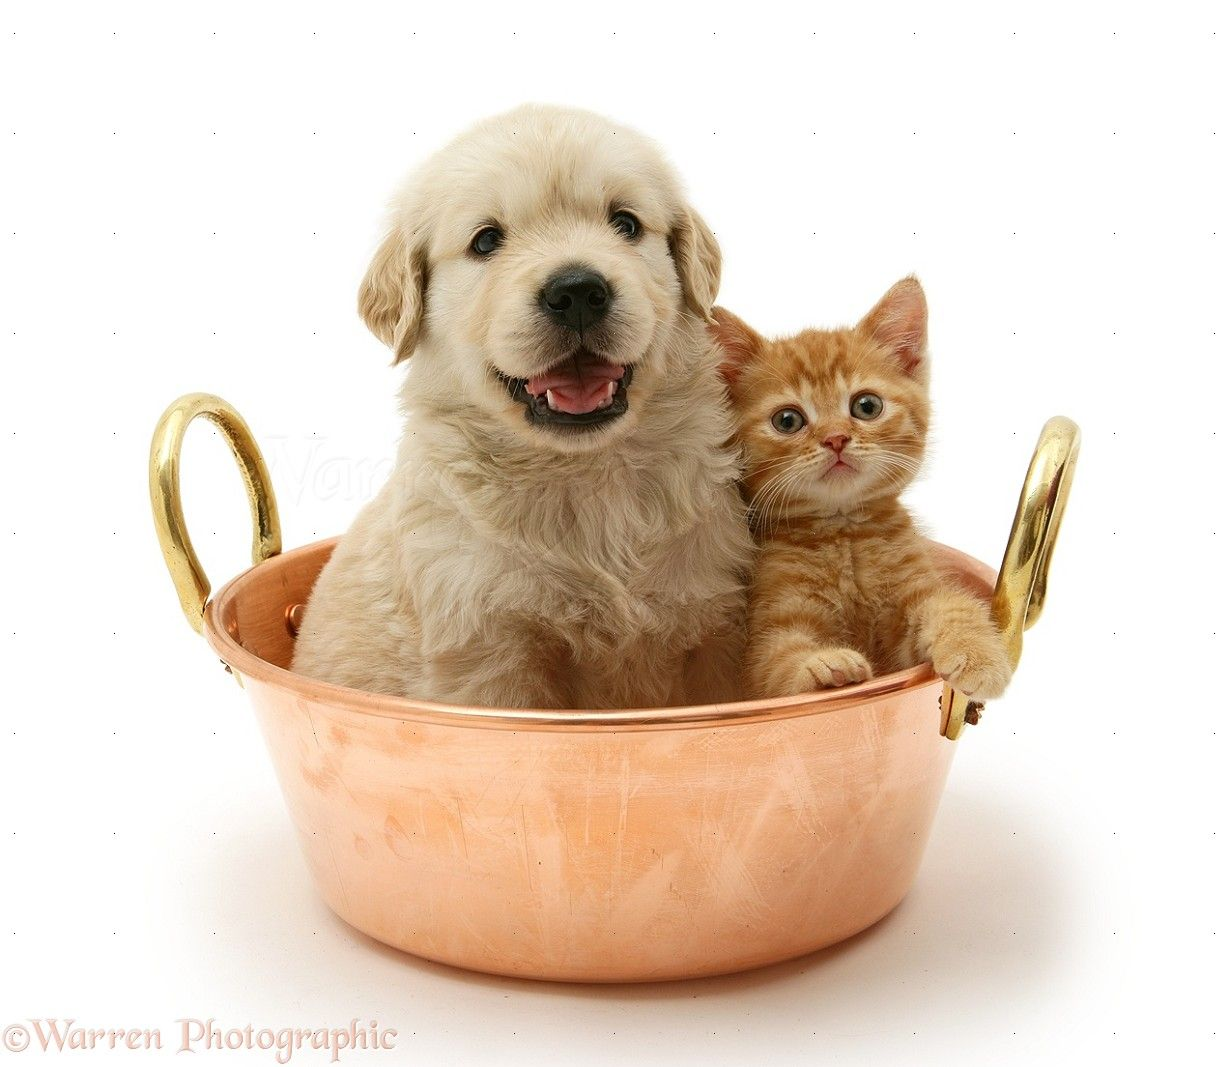 Wp13777 Golden Retriever Pup And Ginger Kitten In A Copper Pan